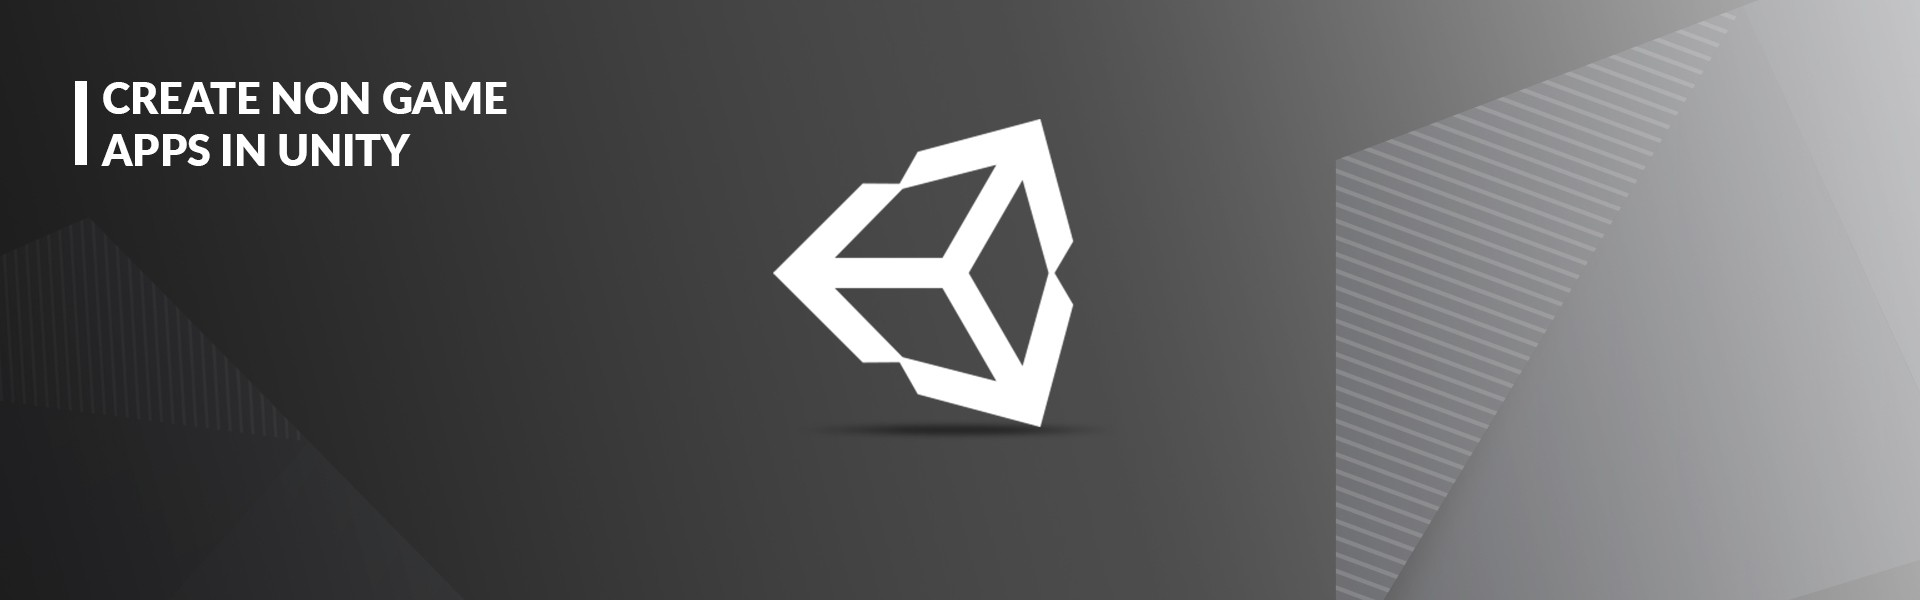 Create Non-game Apps in Unity